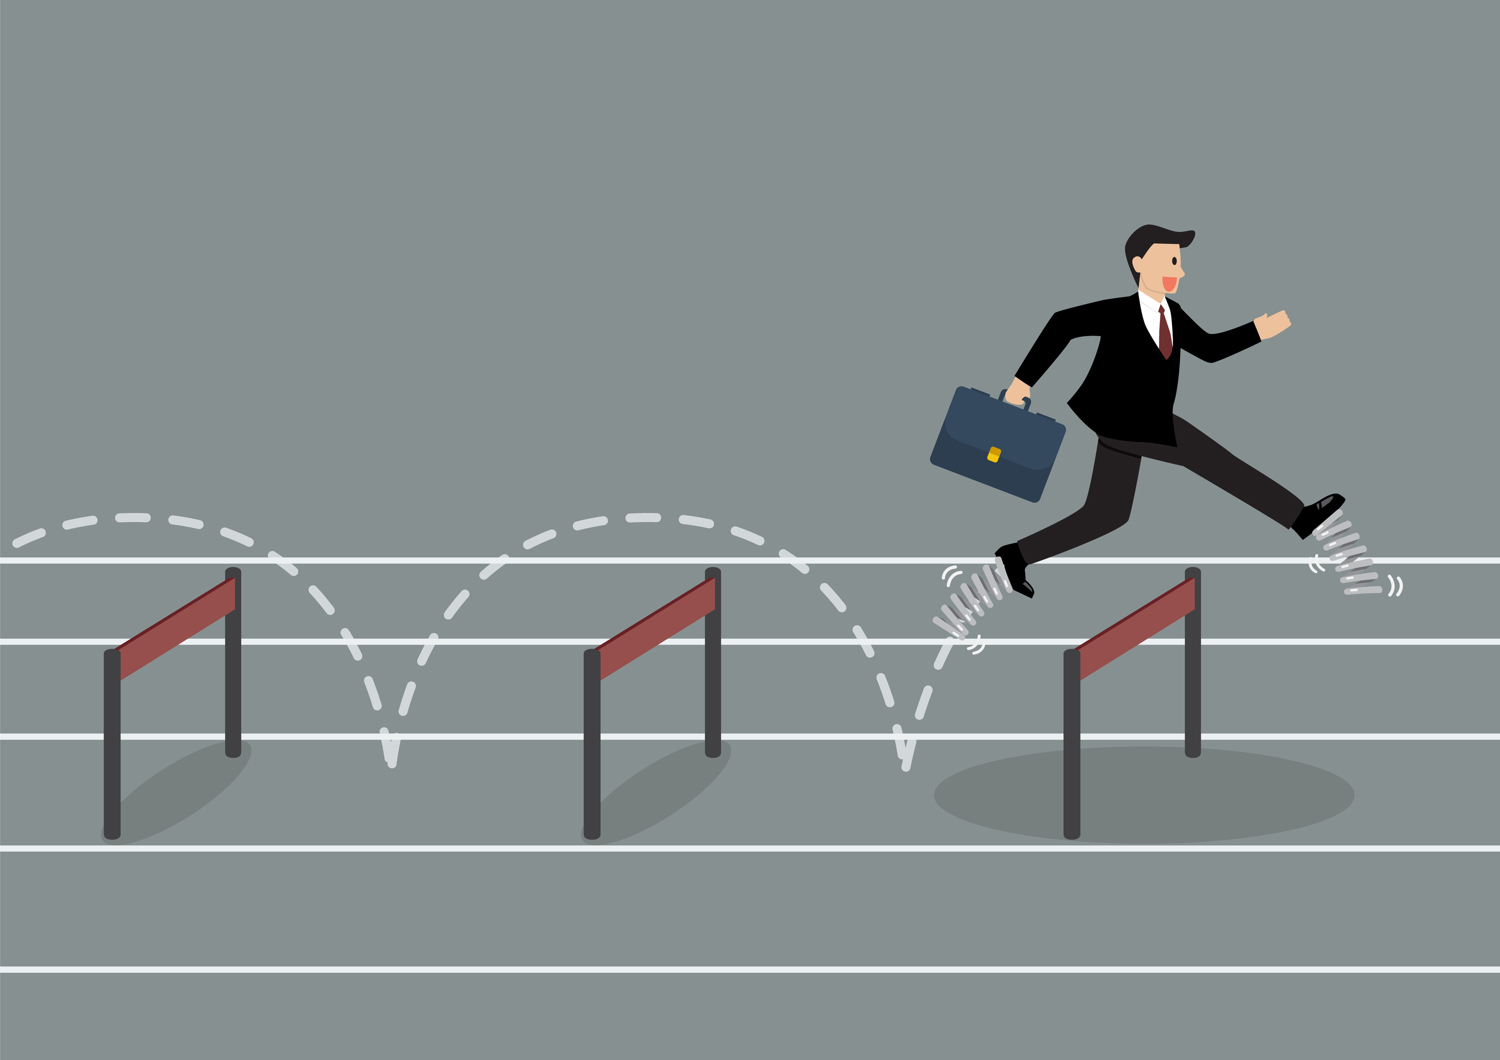 Overcoming obstacles, jumping trend lines, moving averages